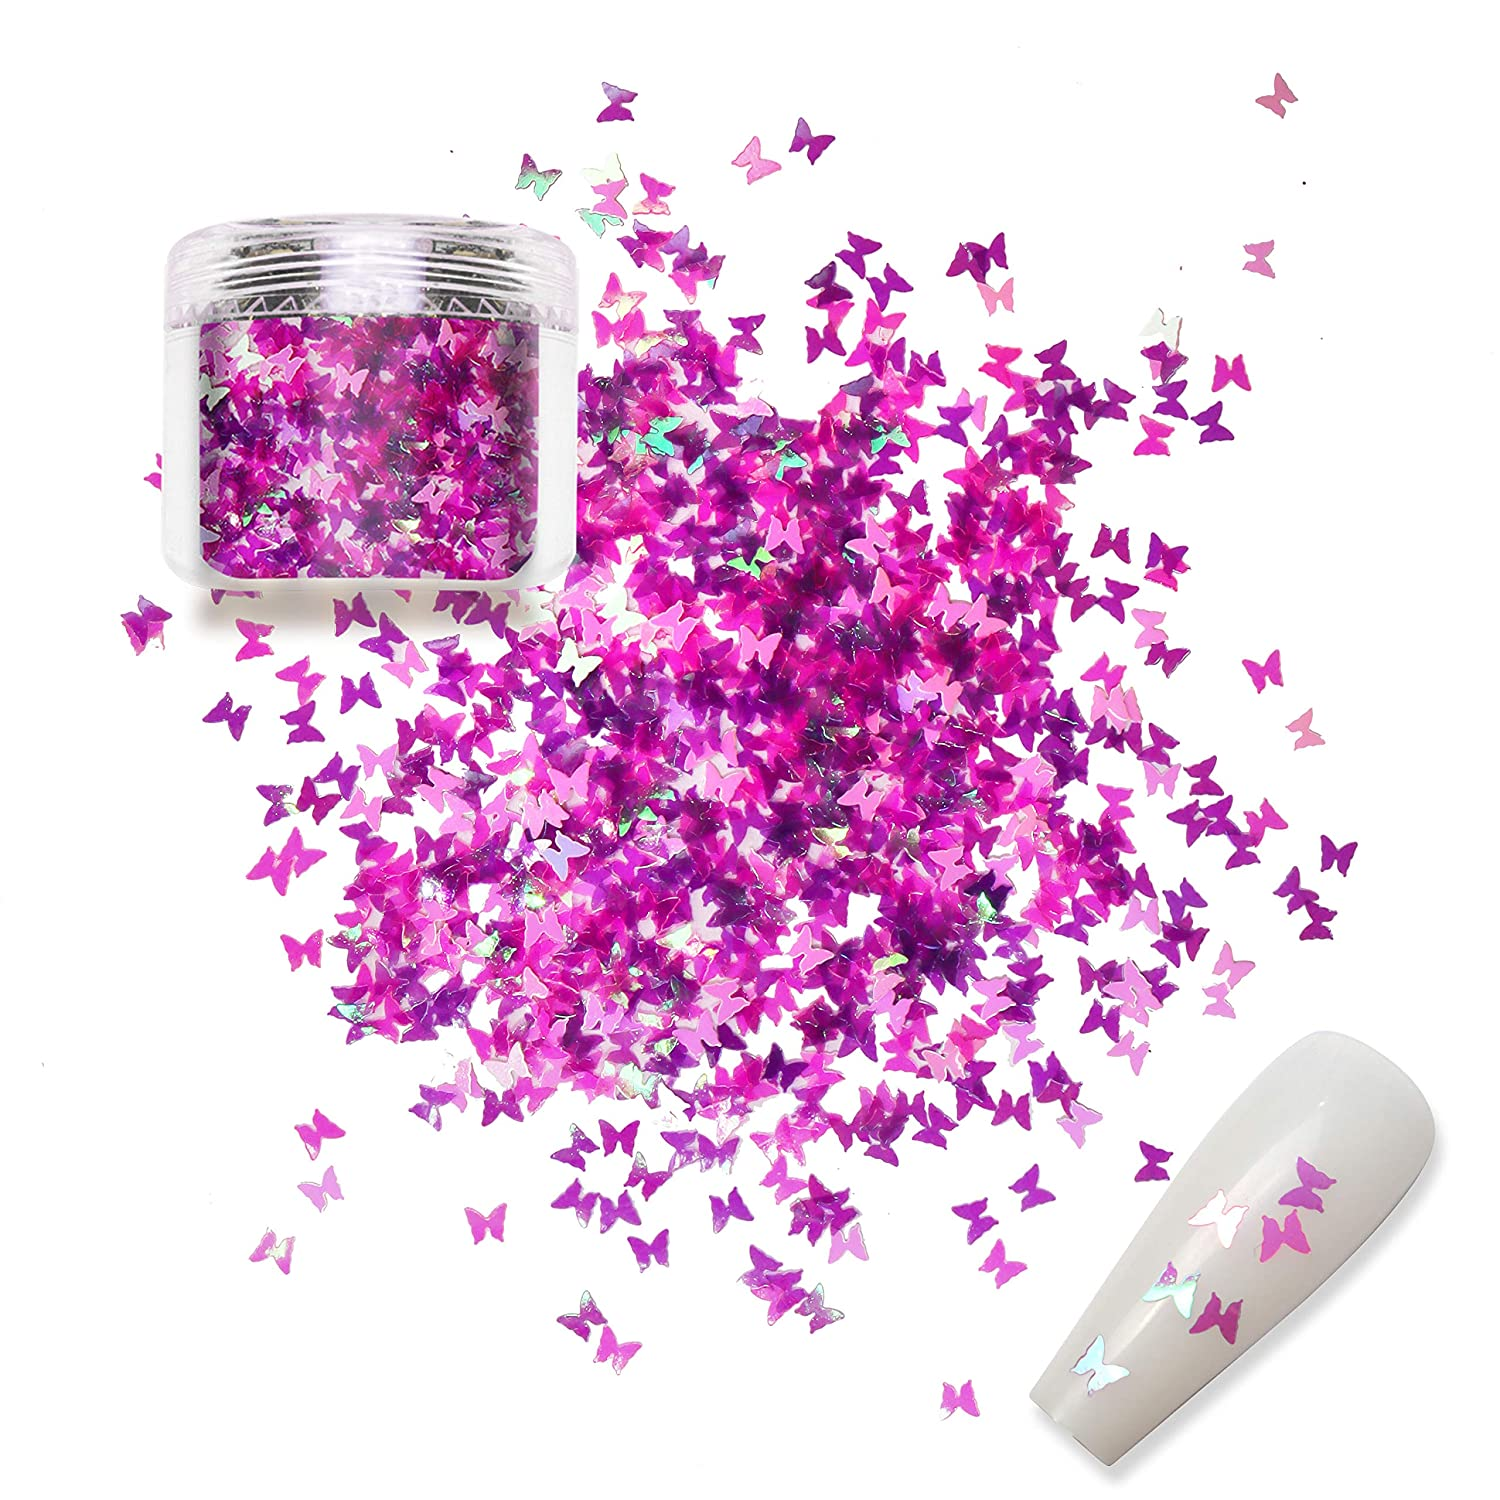 Allstarry Nail Glitter Butterfly Holographic Ultra-thin Iridescent Sequins Flakes Acrylic Nail Art Accessories for Festival Rave Face Makeup Nail DIY Decoration